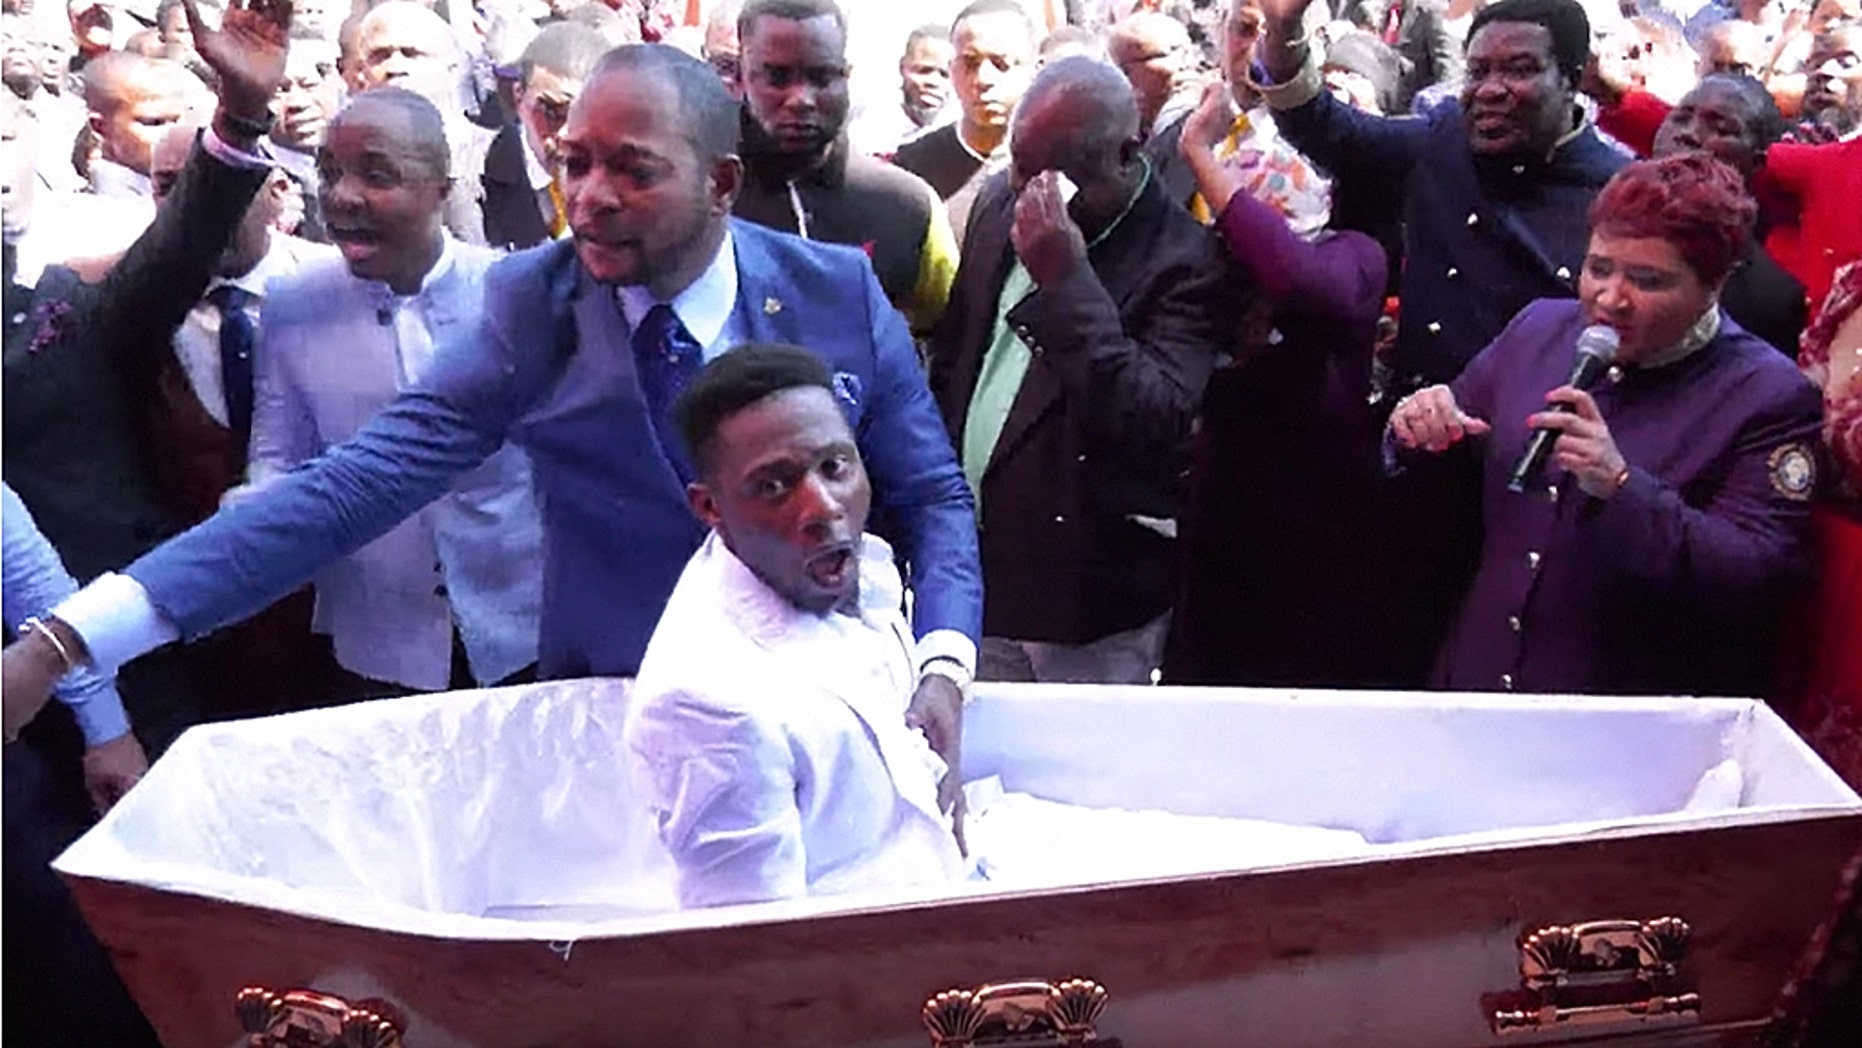 A South African preacher who claimed to have resurrected a man in a now-viral video may be facing charges